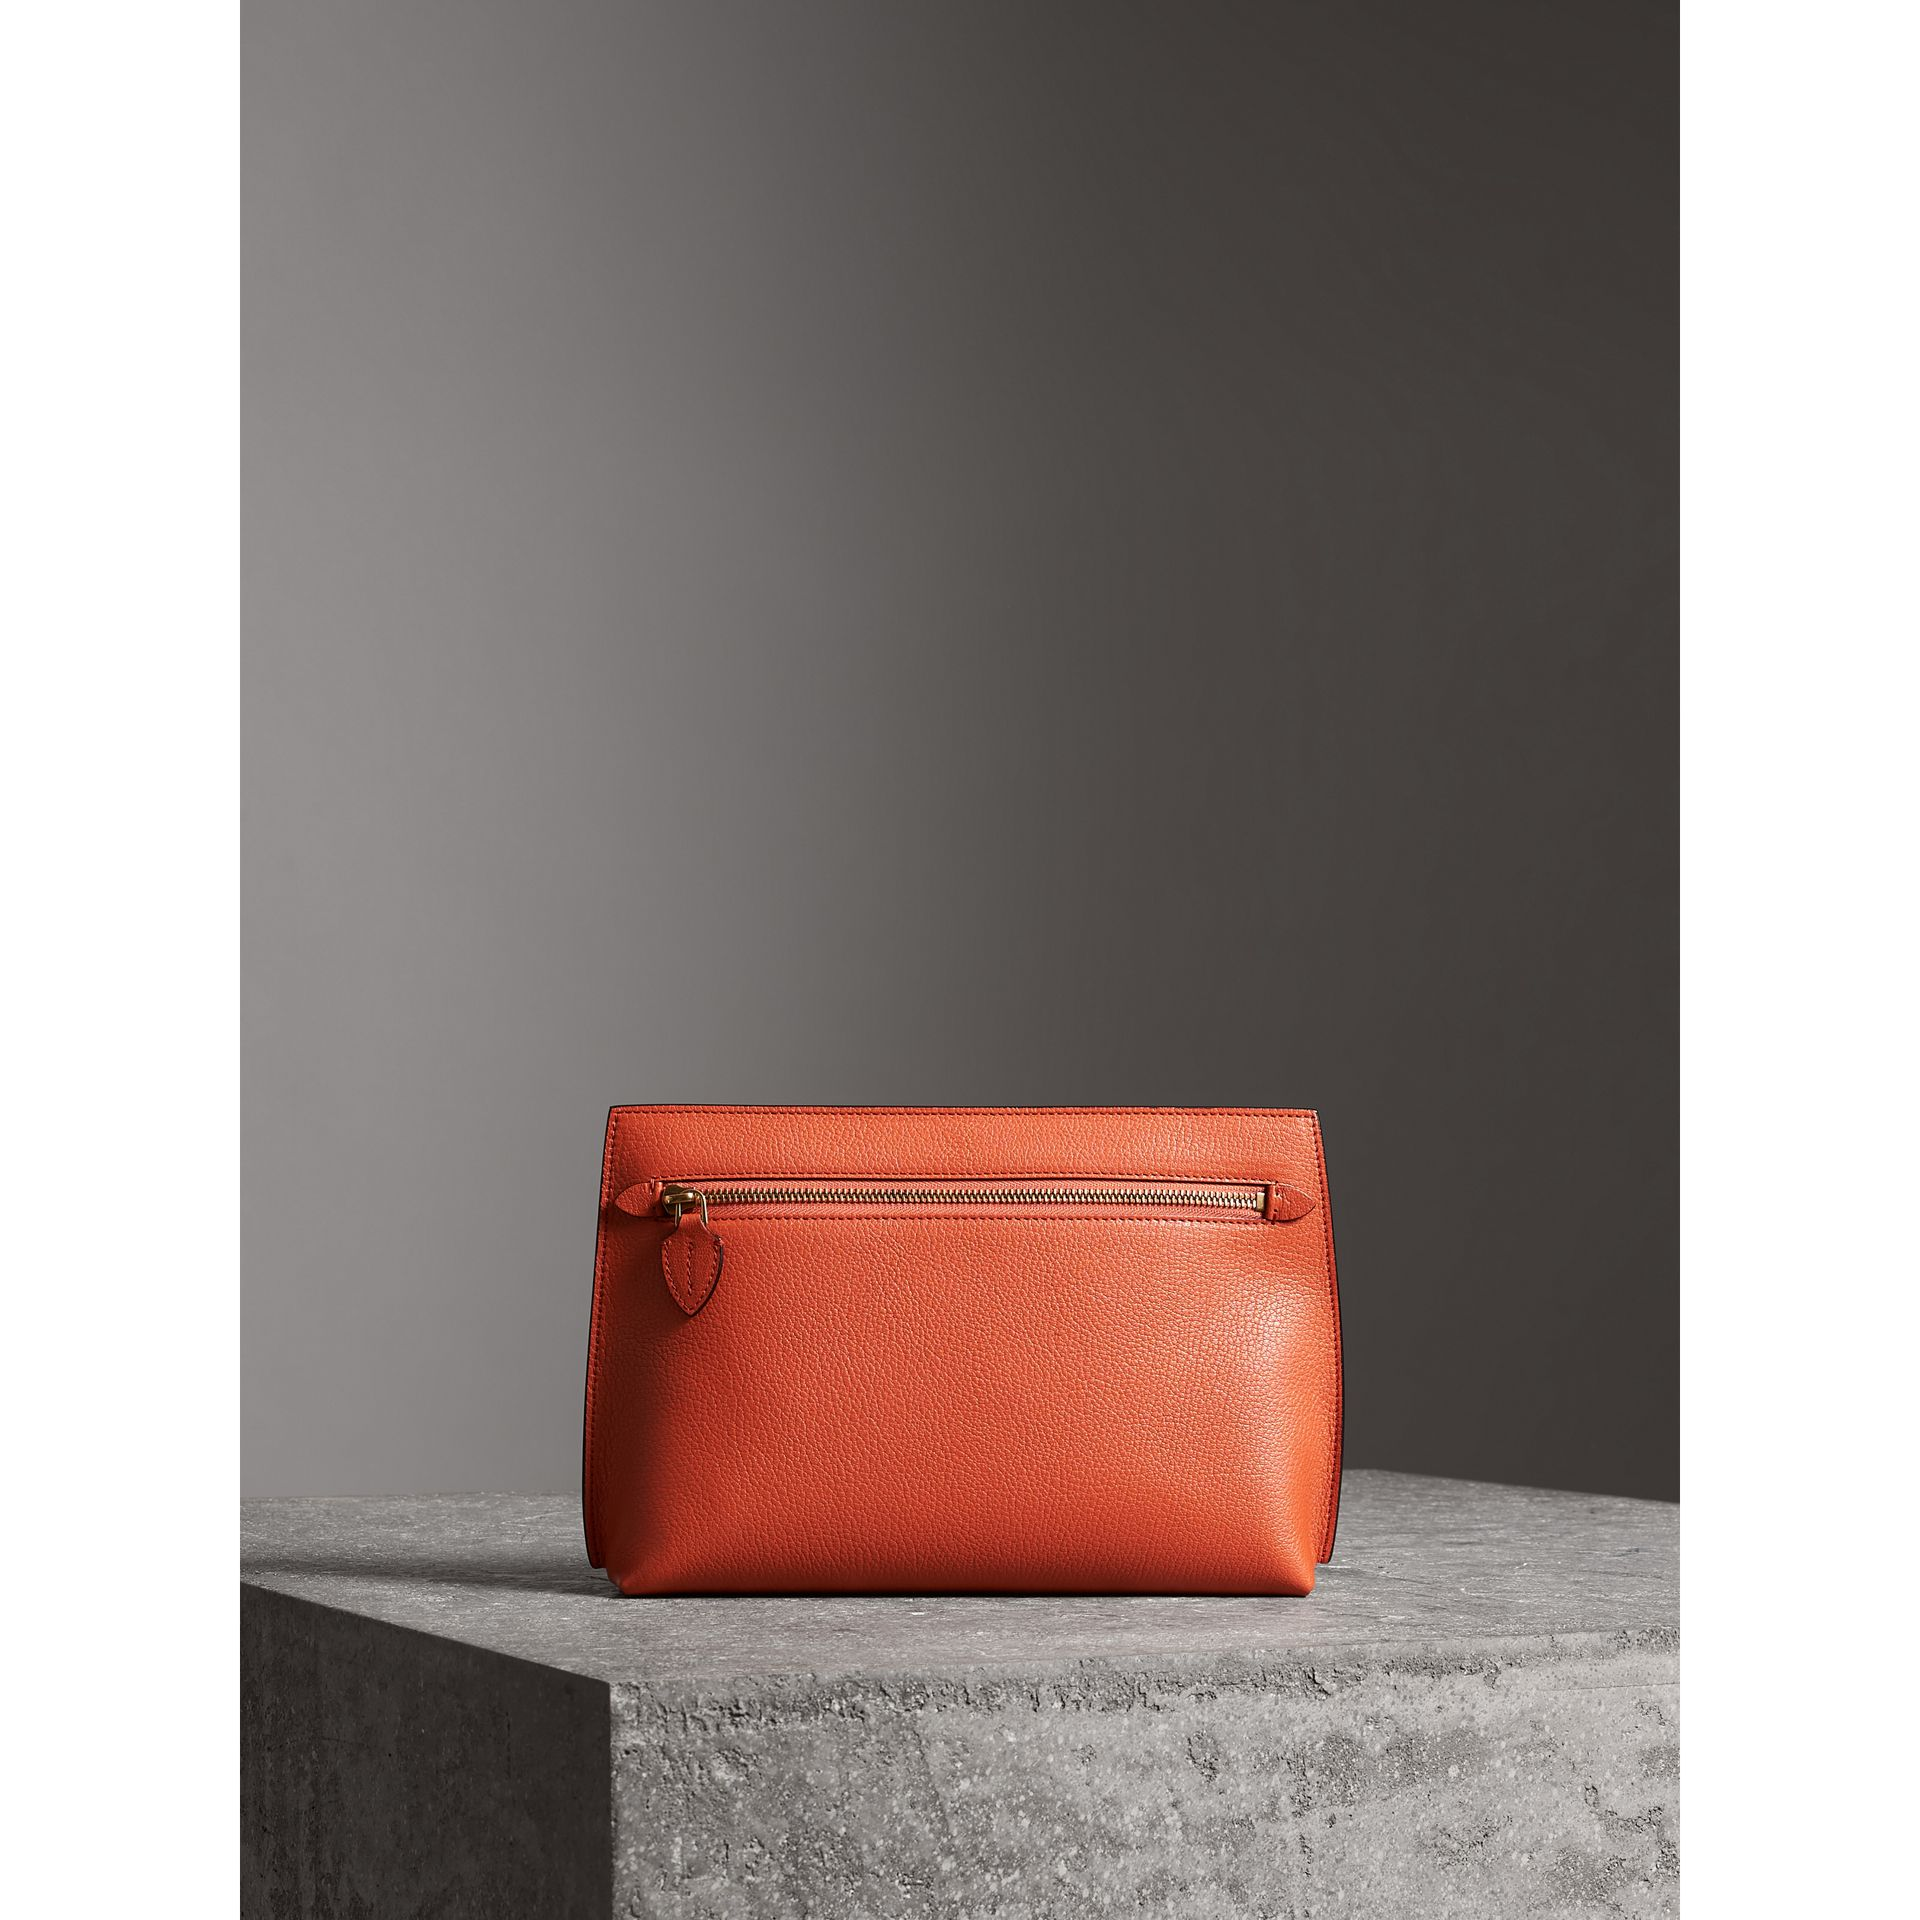 Grainy Leather Wristlet Clutch in Clementine - Women | Burberry Australia - gallery image 5